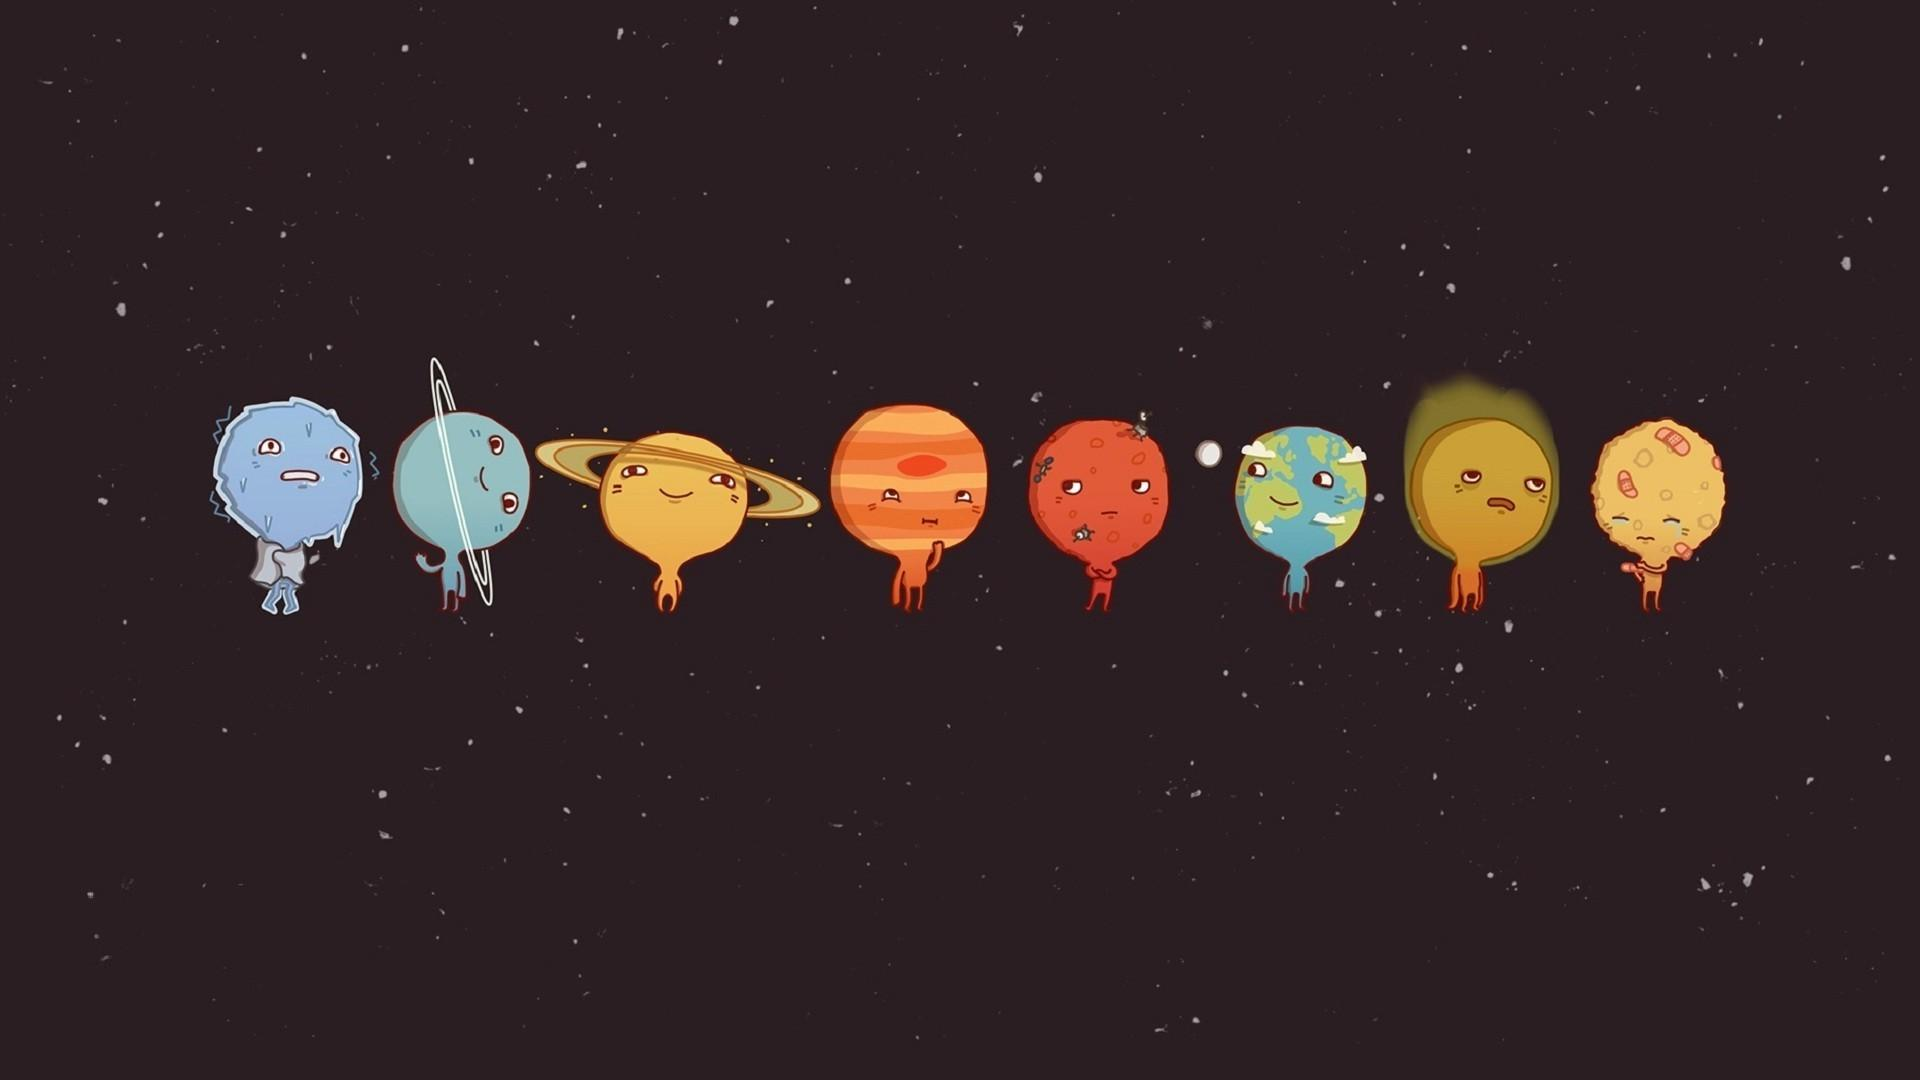 space, Sun, Pluto, Venus, Mercury, Earth, Mars, Moon, Solar System